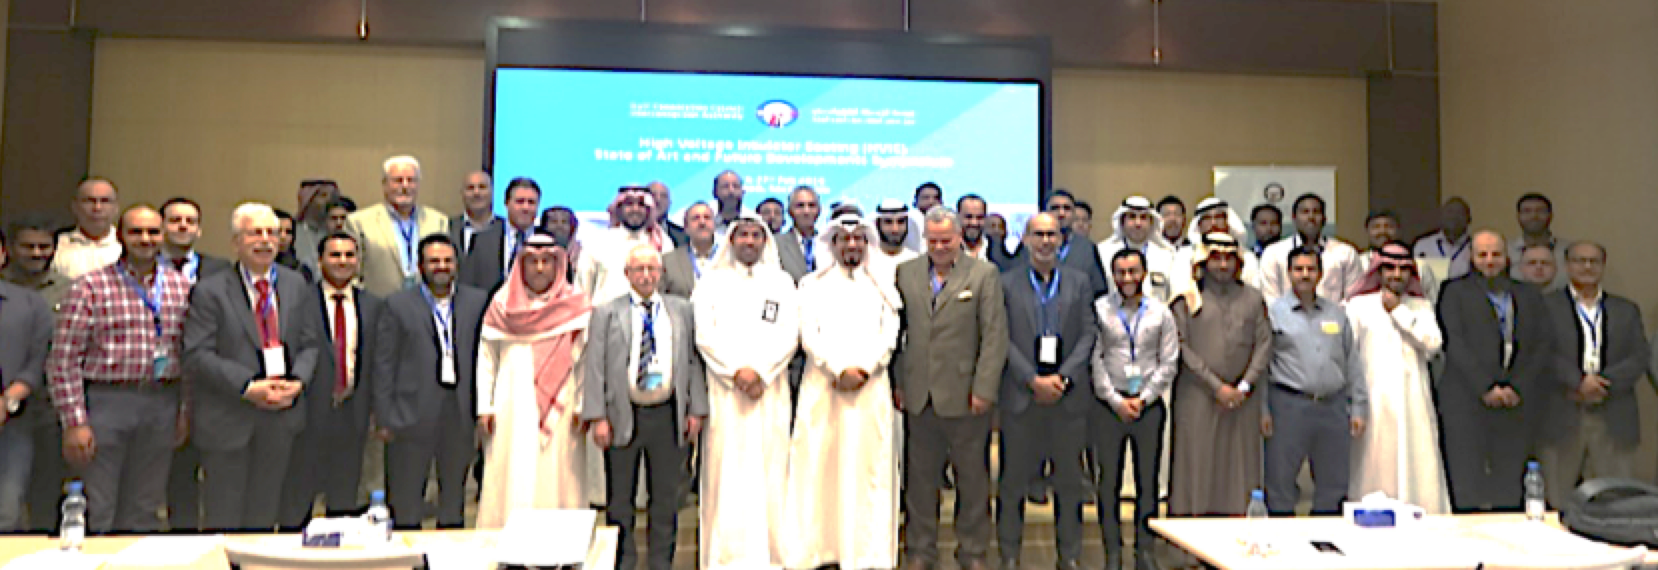 high voltage insulator coating High Voltage Insulator Coatings: State-of-the-Art & Future Development Participants in Dammam Symposium February 2019